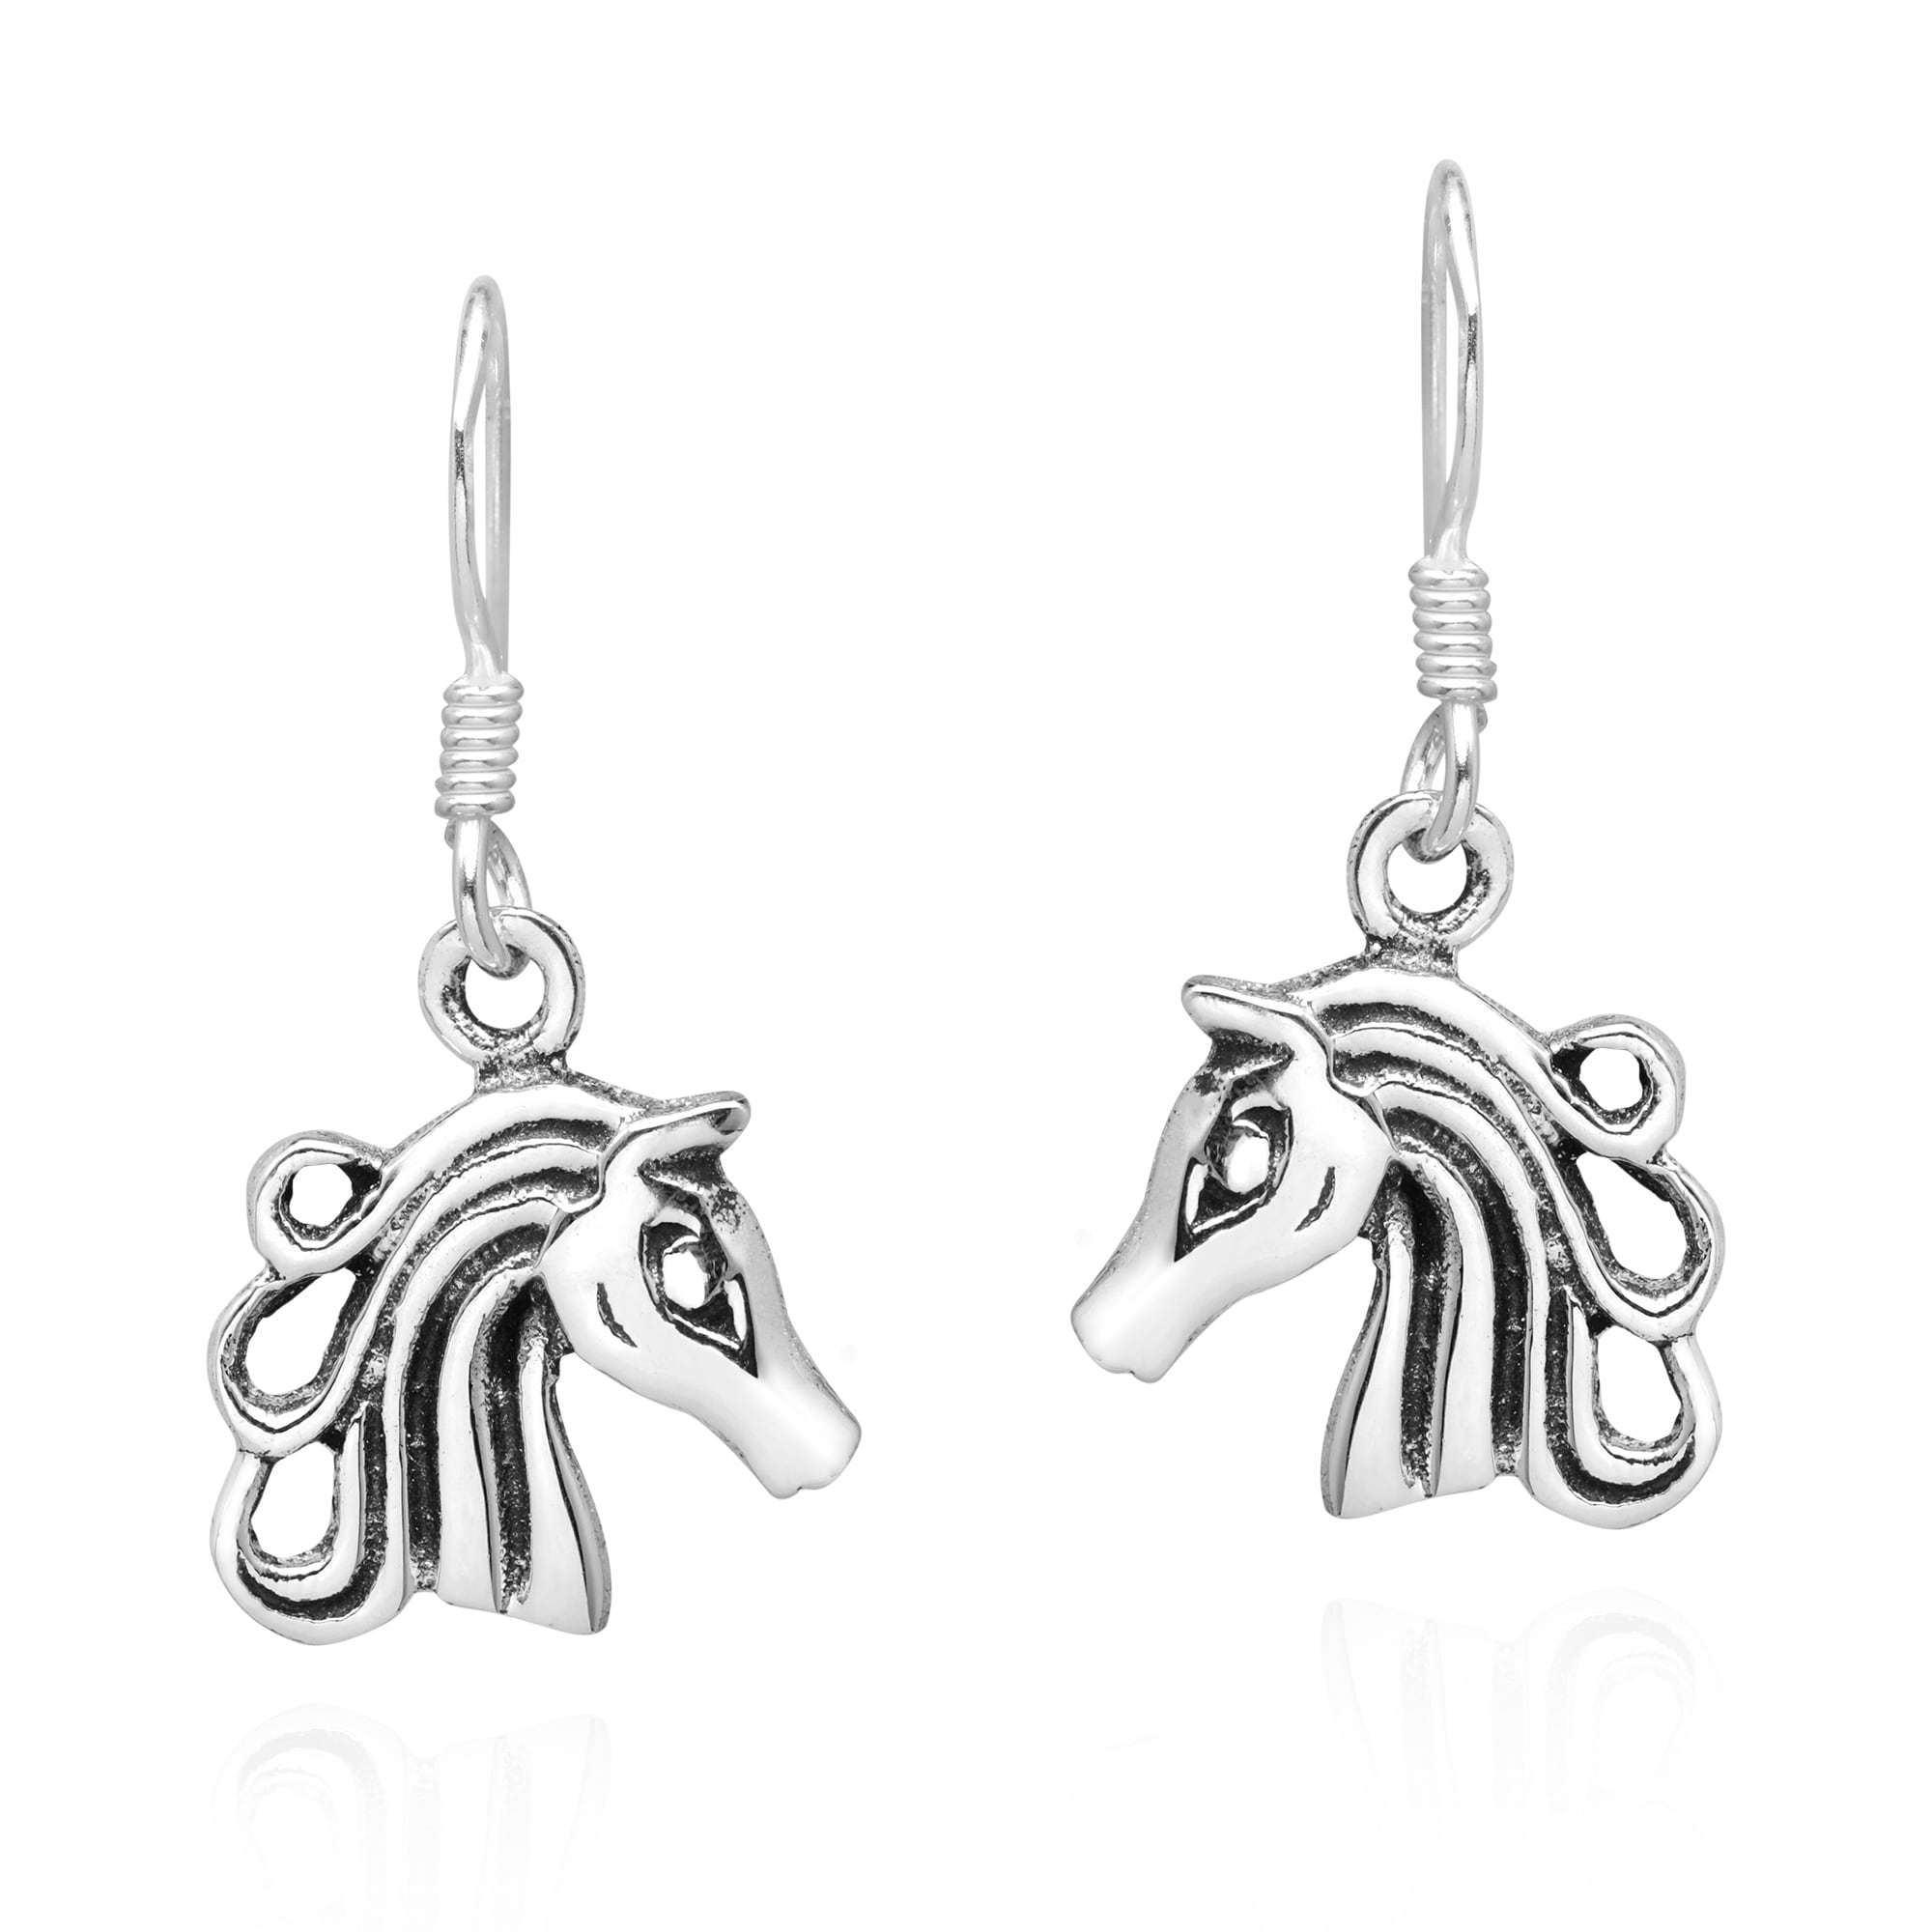 Handmade Graceful Equine 925 Sterling Silver Dangle Horse Earrings Thailand Free Shipping On Orders Over 45 24254569